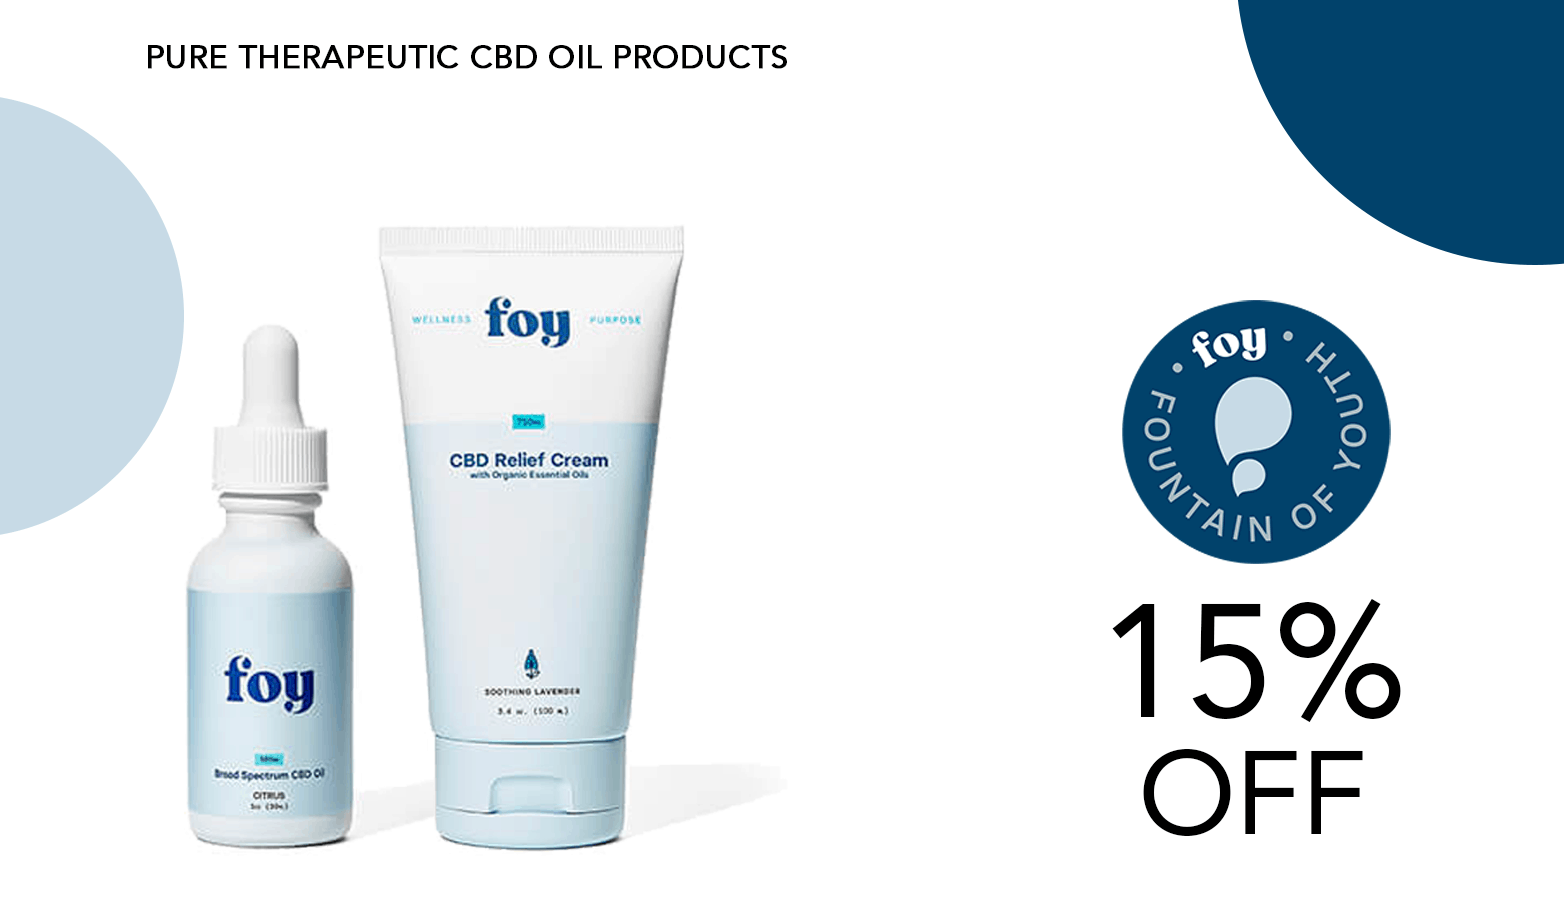 Foy CBD Coupon Code 15 Percent Offer Website